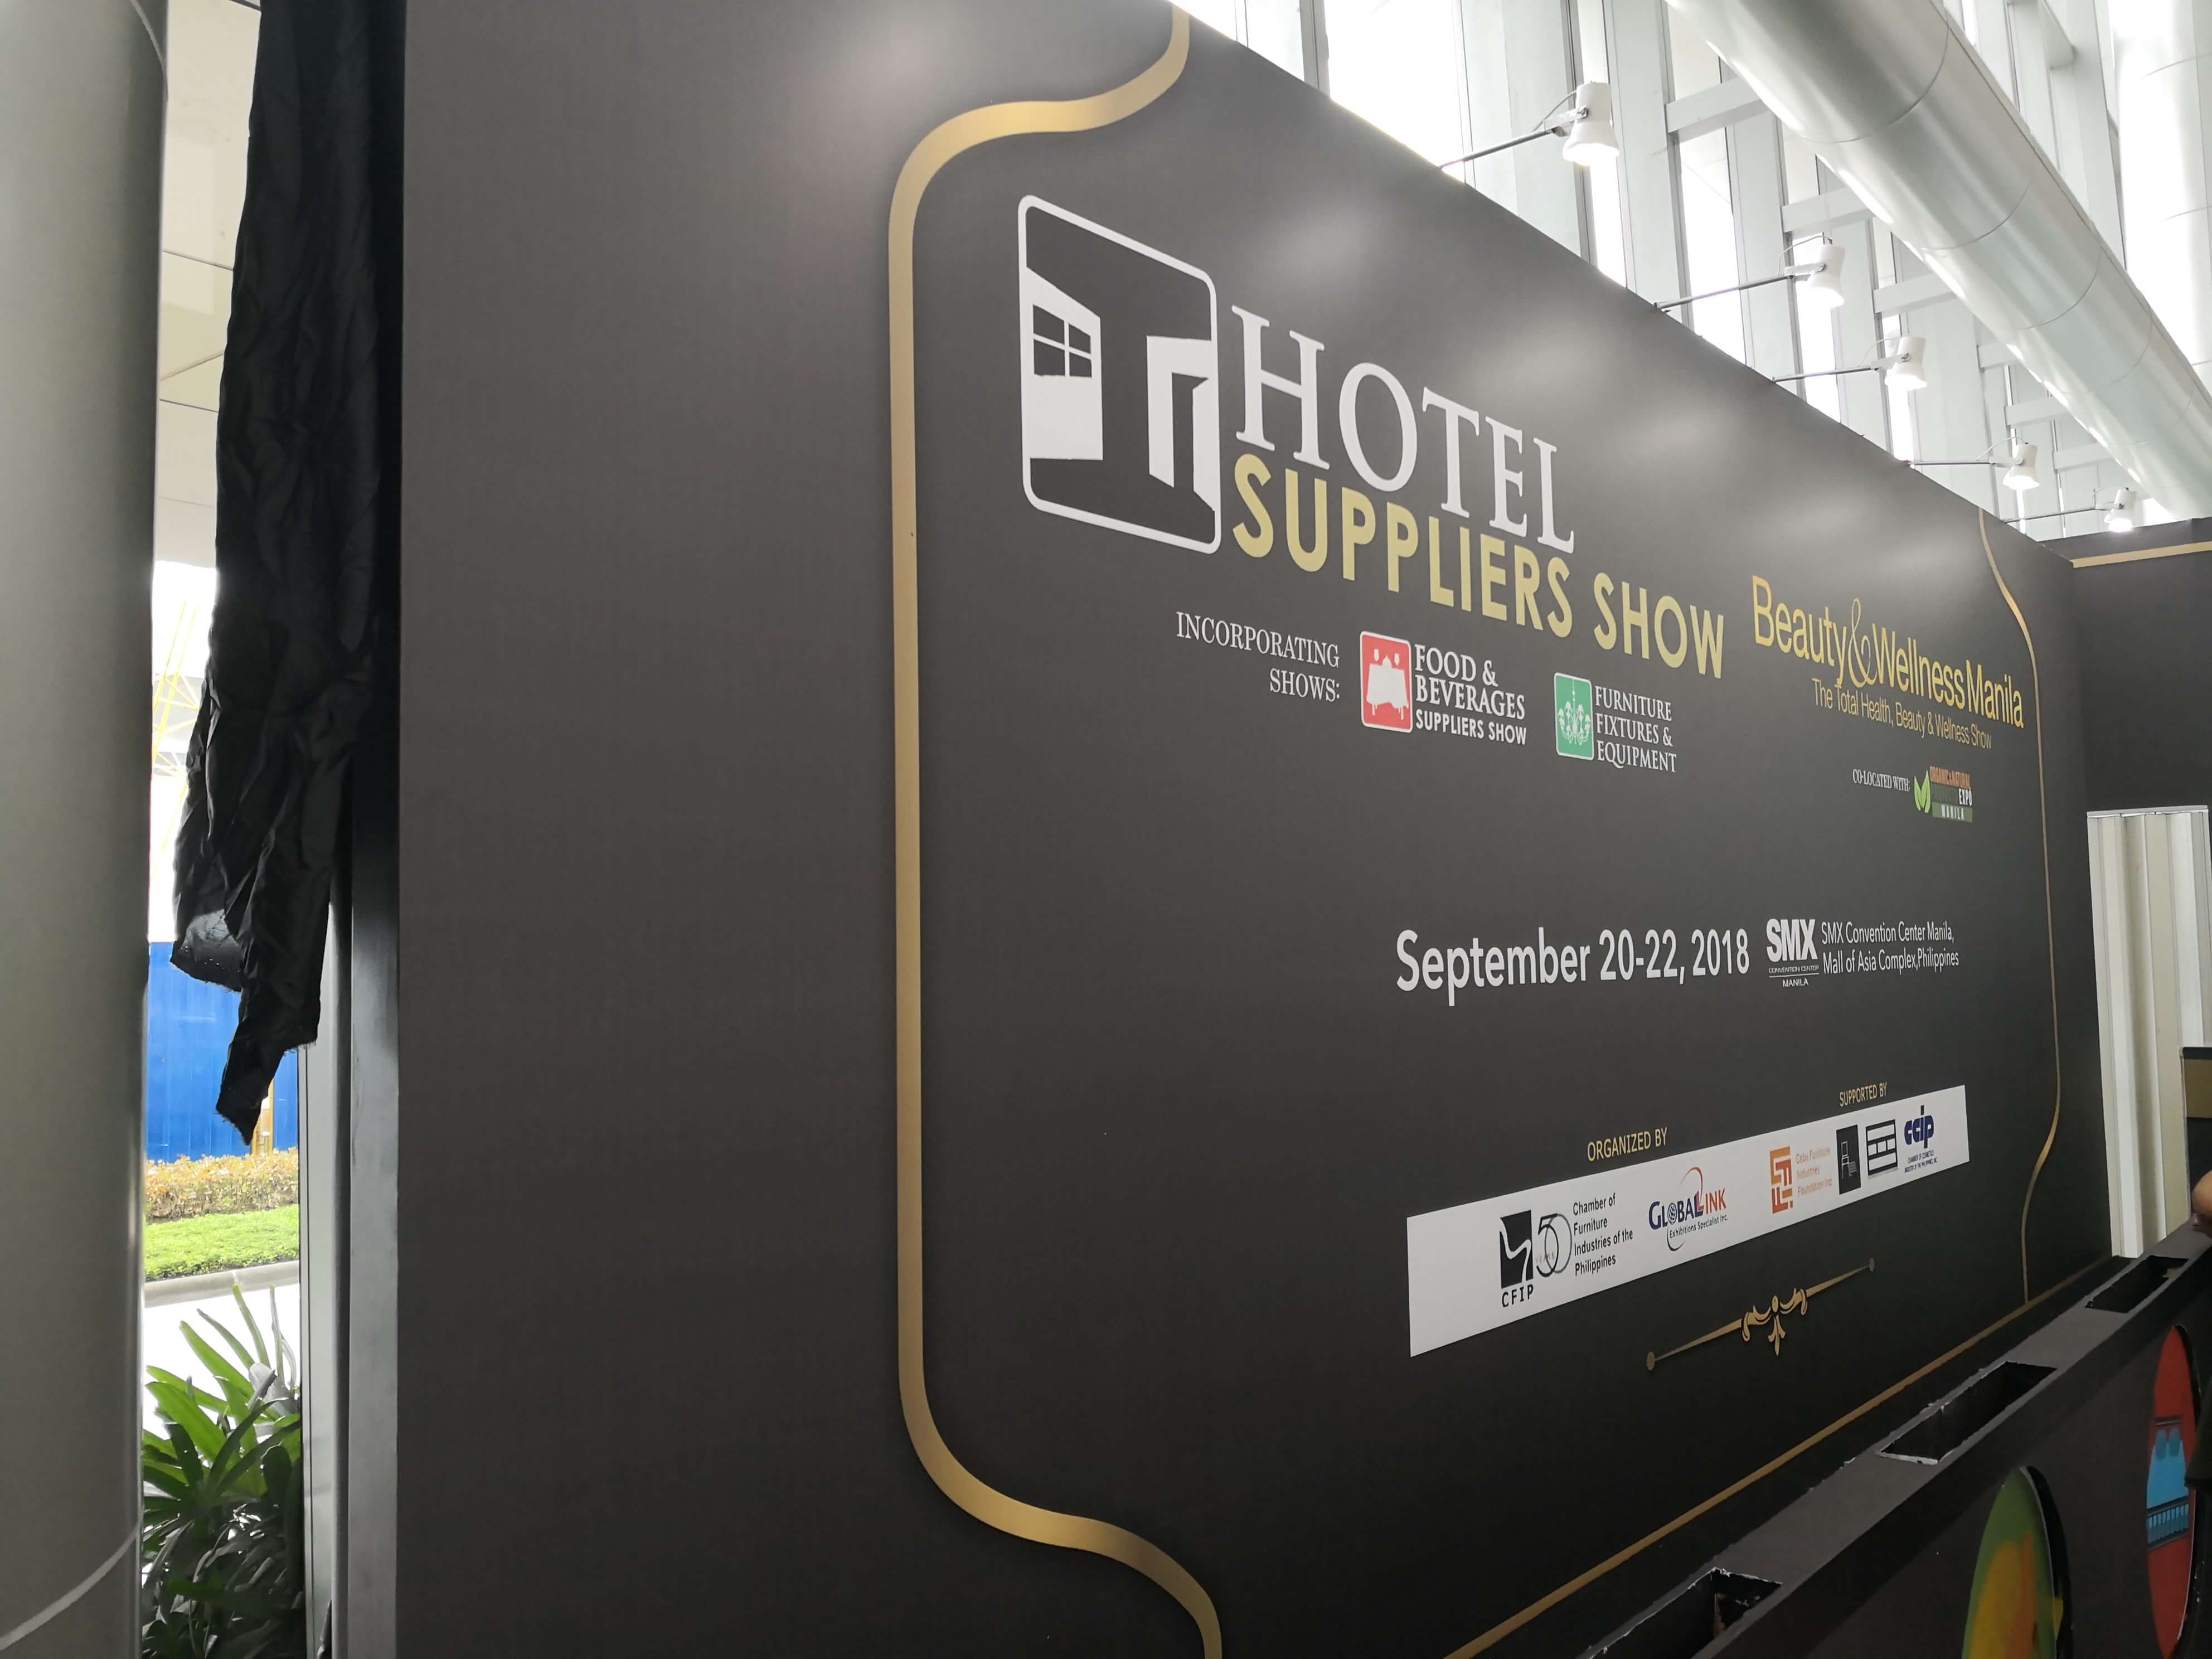 KAHN attended Hotel Suppliers Show 2018 - More than Just an Hotel Lock